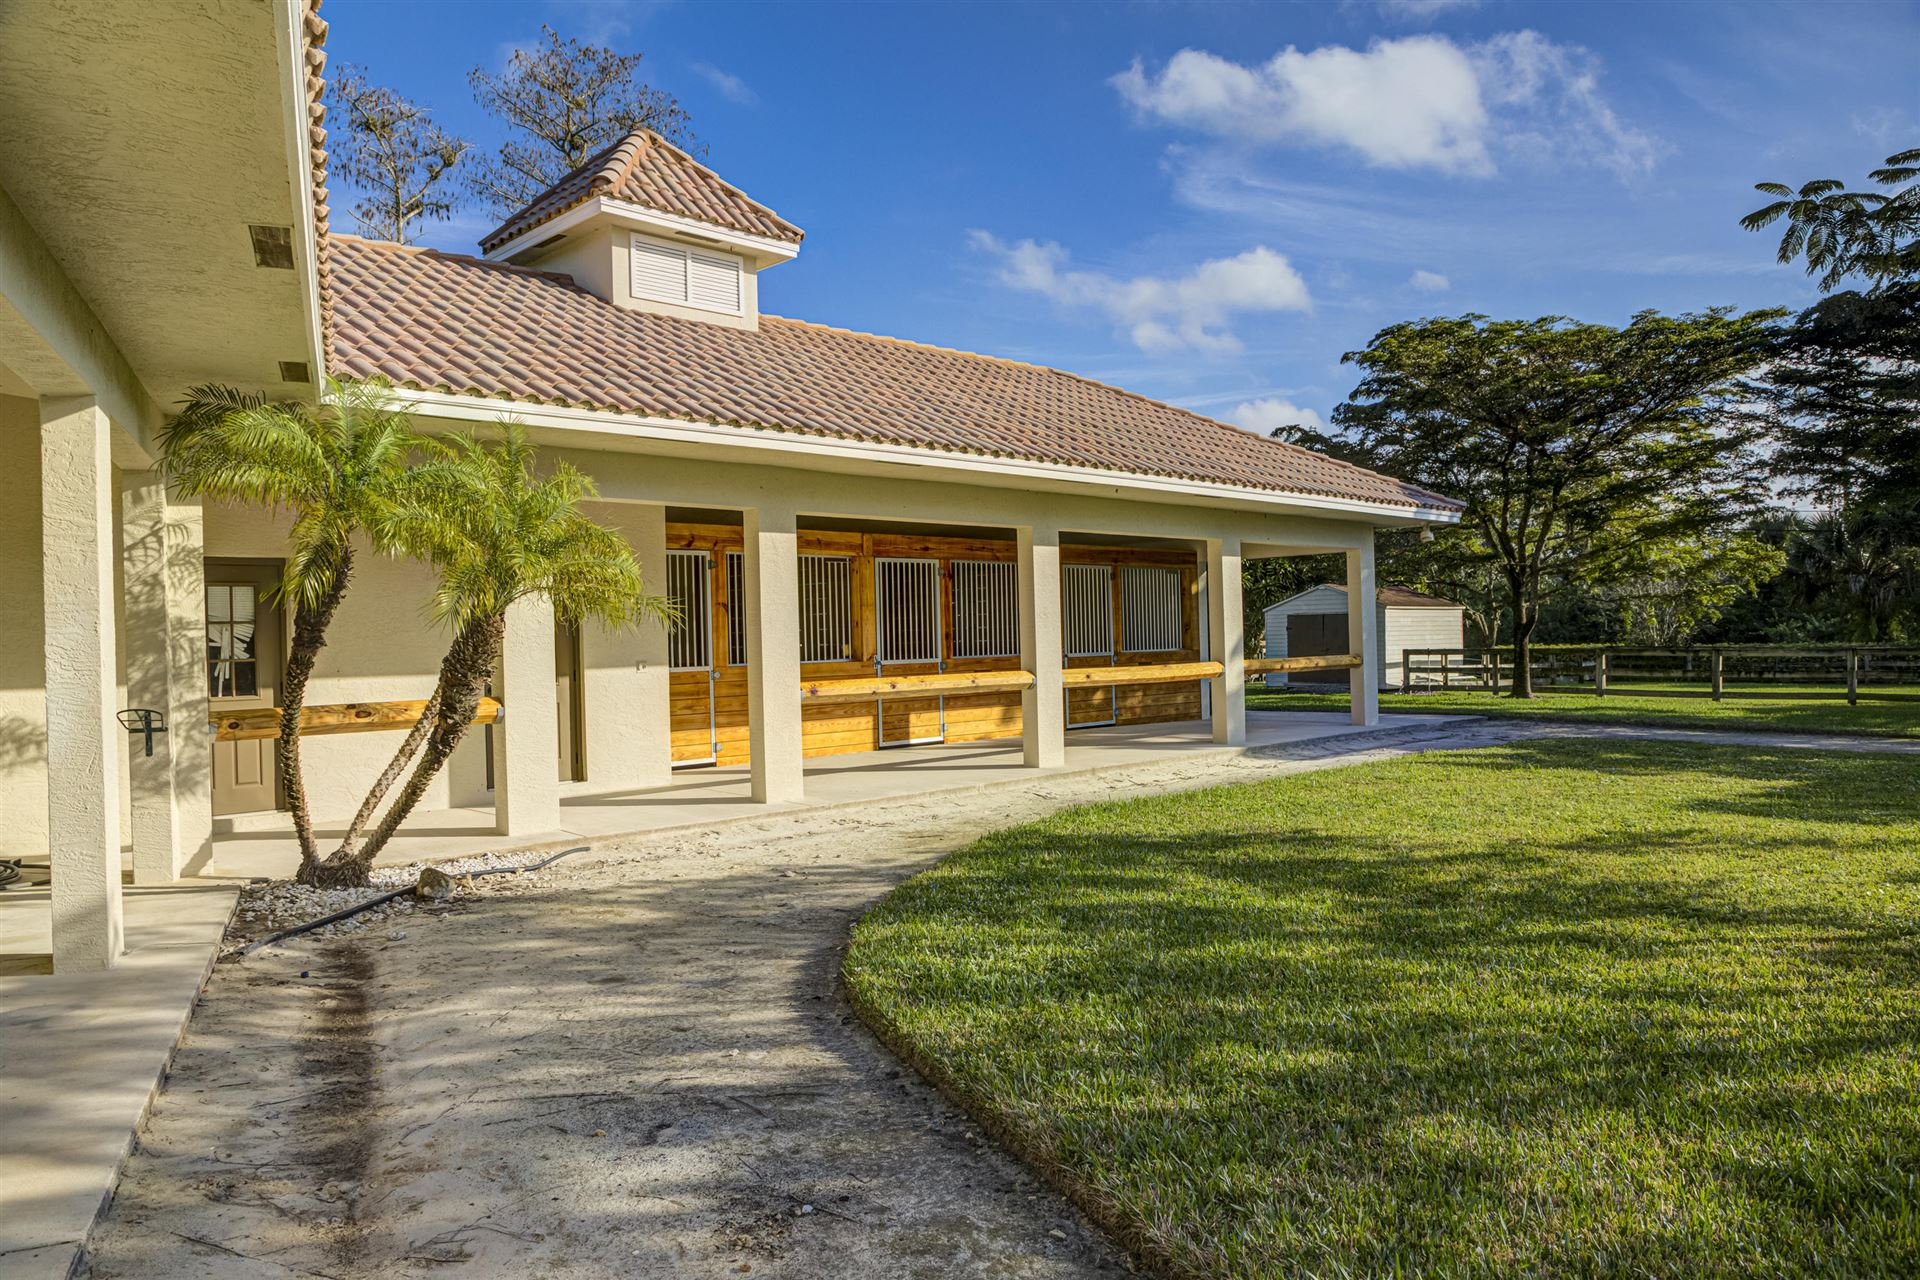 Photo of 1030 Clydesdale Drive, Loxahatchee, FL 33470 (MLS # RX-10637477)